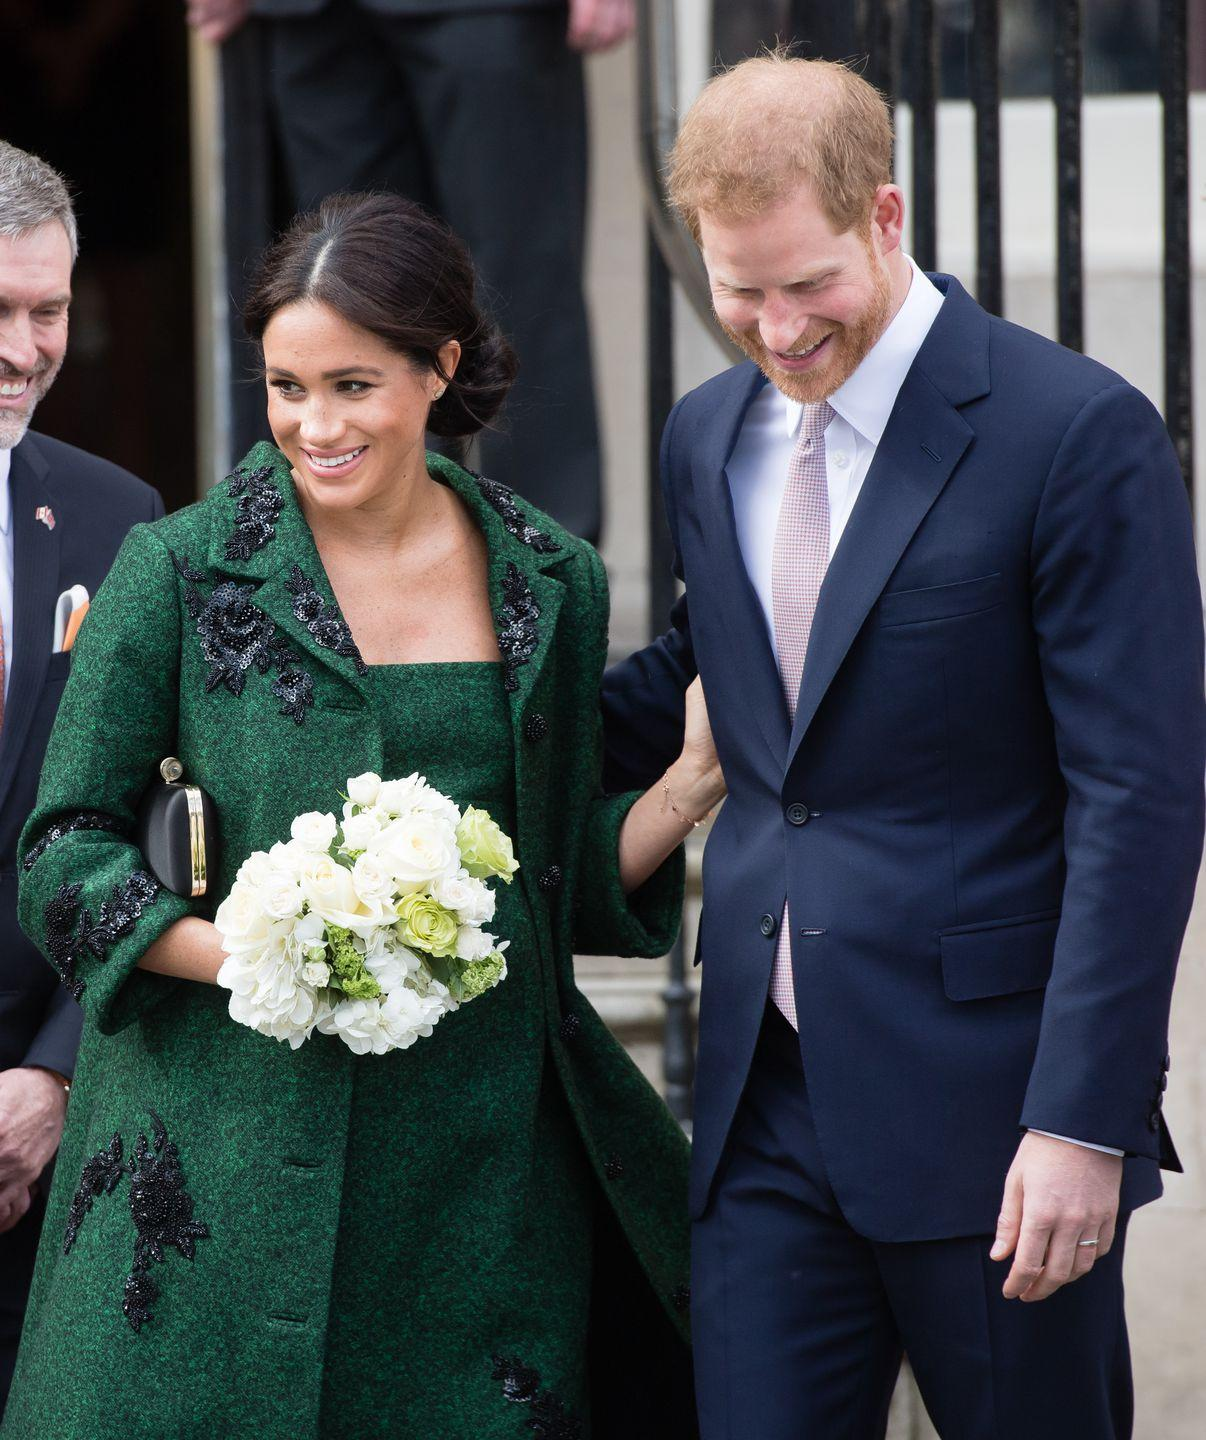 There Will Reportedly Be An Announcement When Meghan